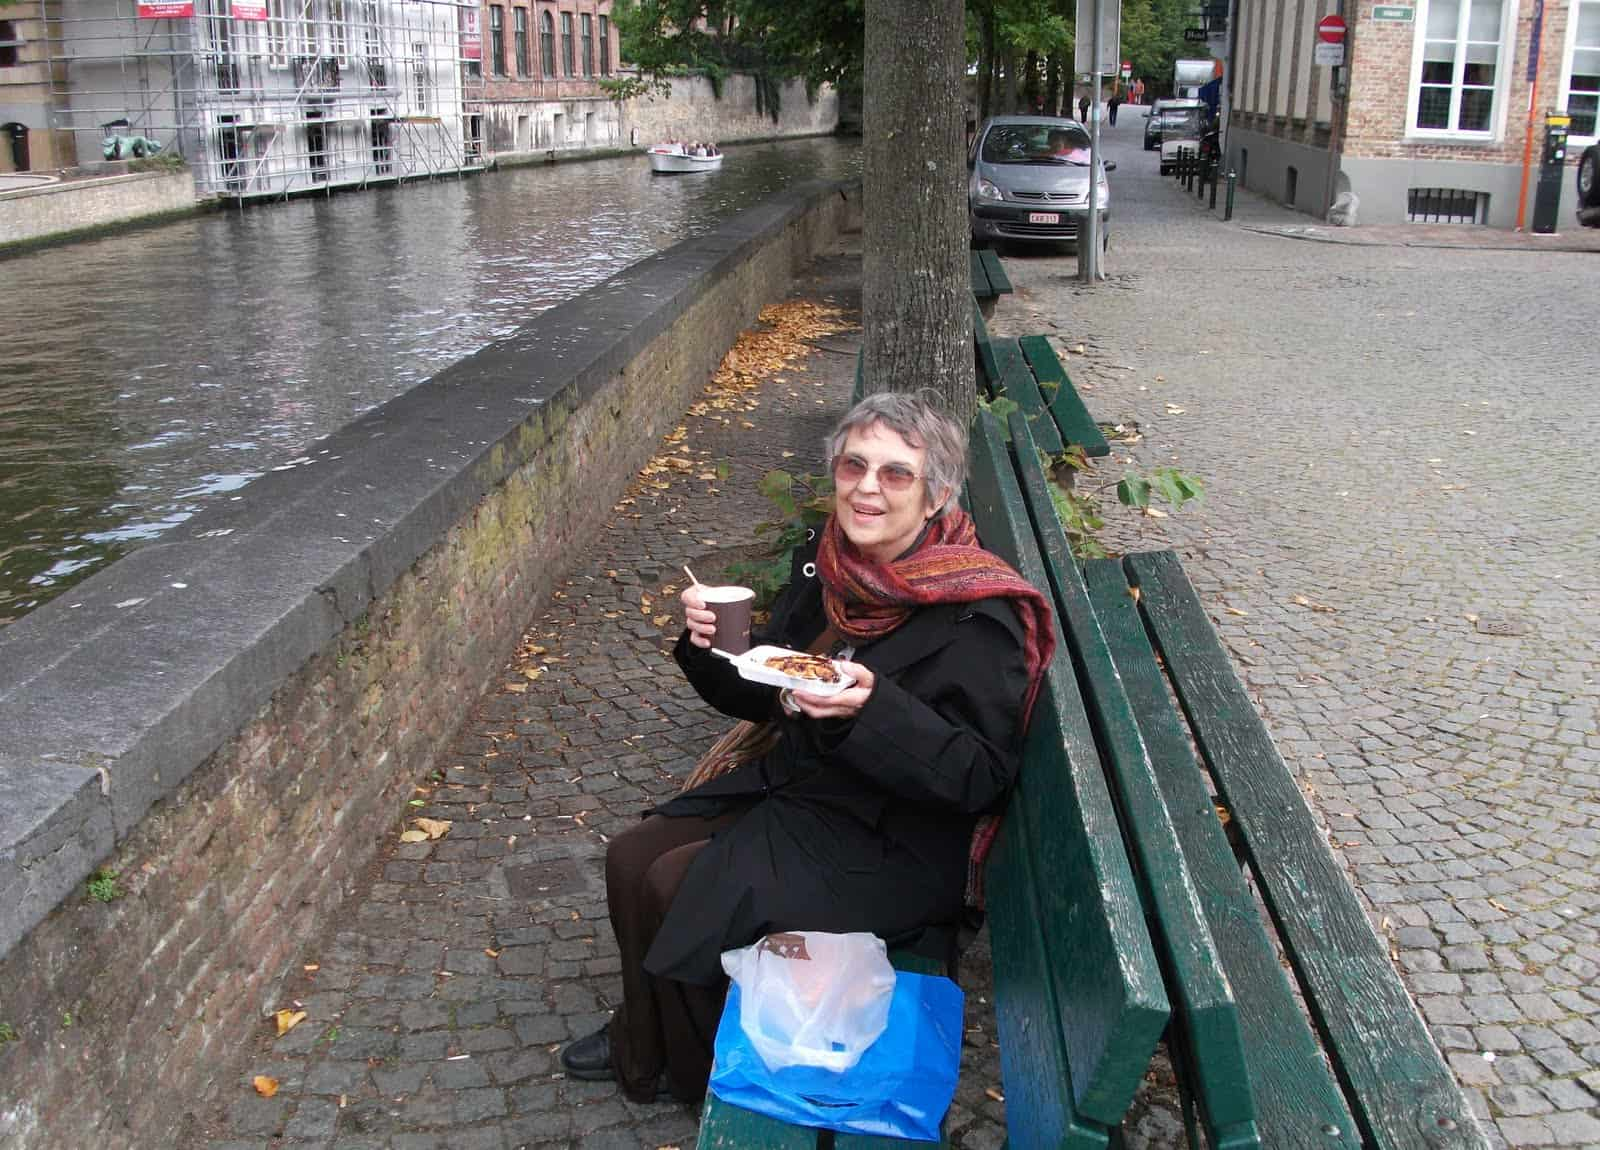 Blogger and freelance writer Vera Marie Badertscher eating a chocolate waffle in Brugge, Belgium.